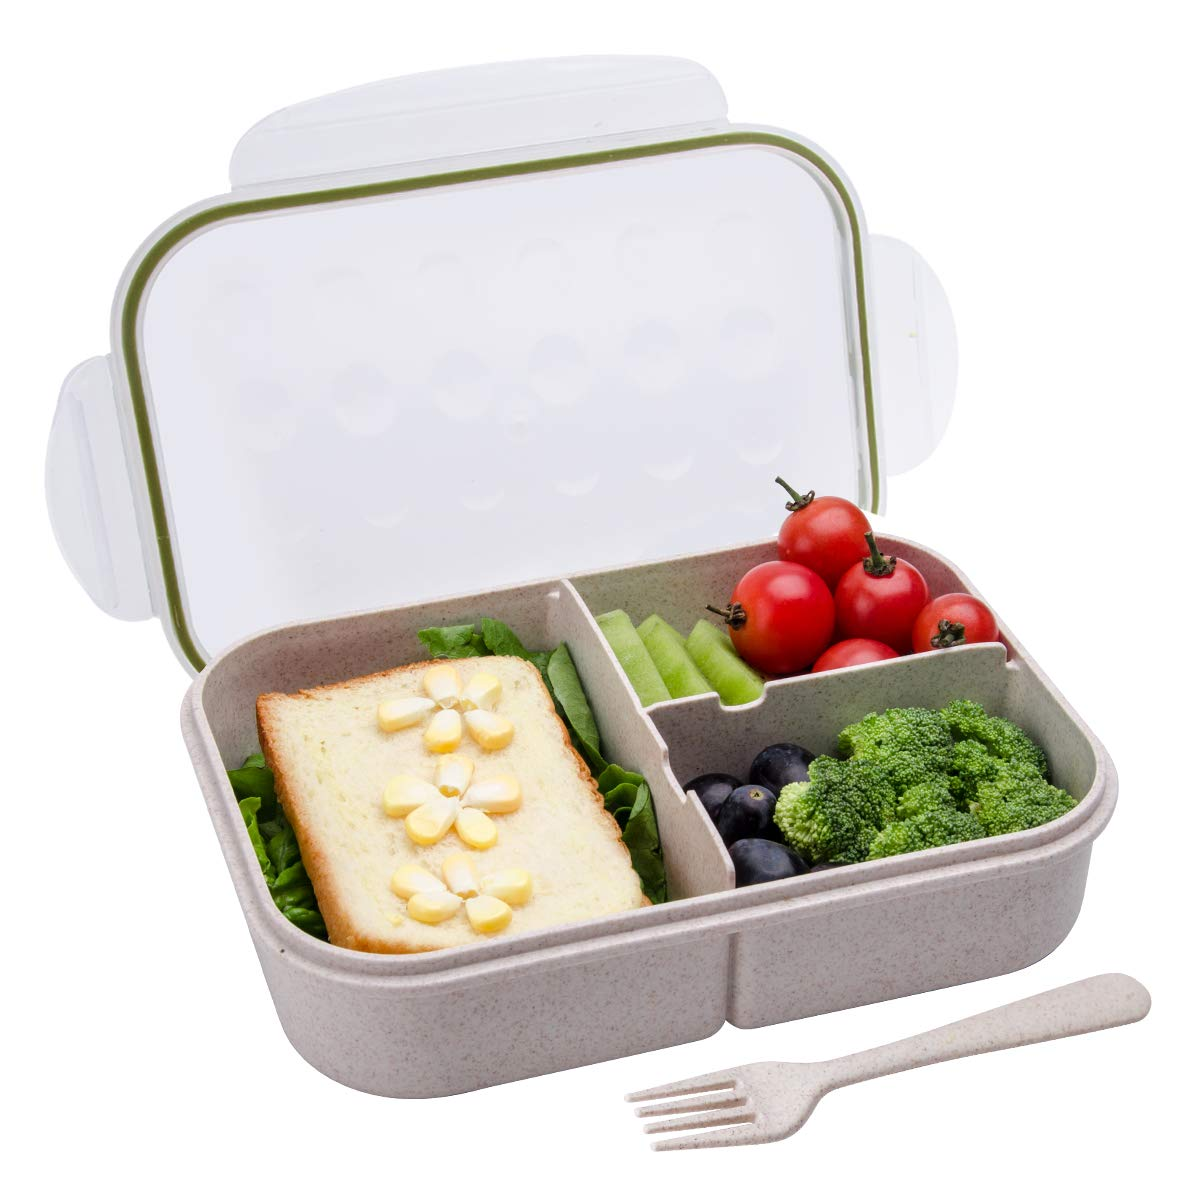 a46aeebf8e42 Bento Box,Bento Lunch Box for Kids and Adults, Leakproof Lunch Containers  with 3 Compartments, Lunch box Made by Wheat Fiber Material(White) By Itopor